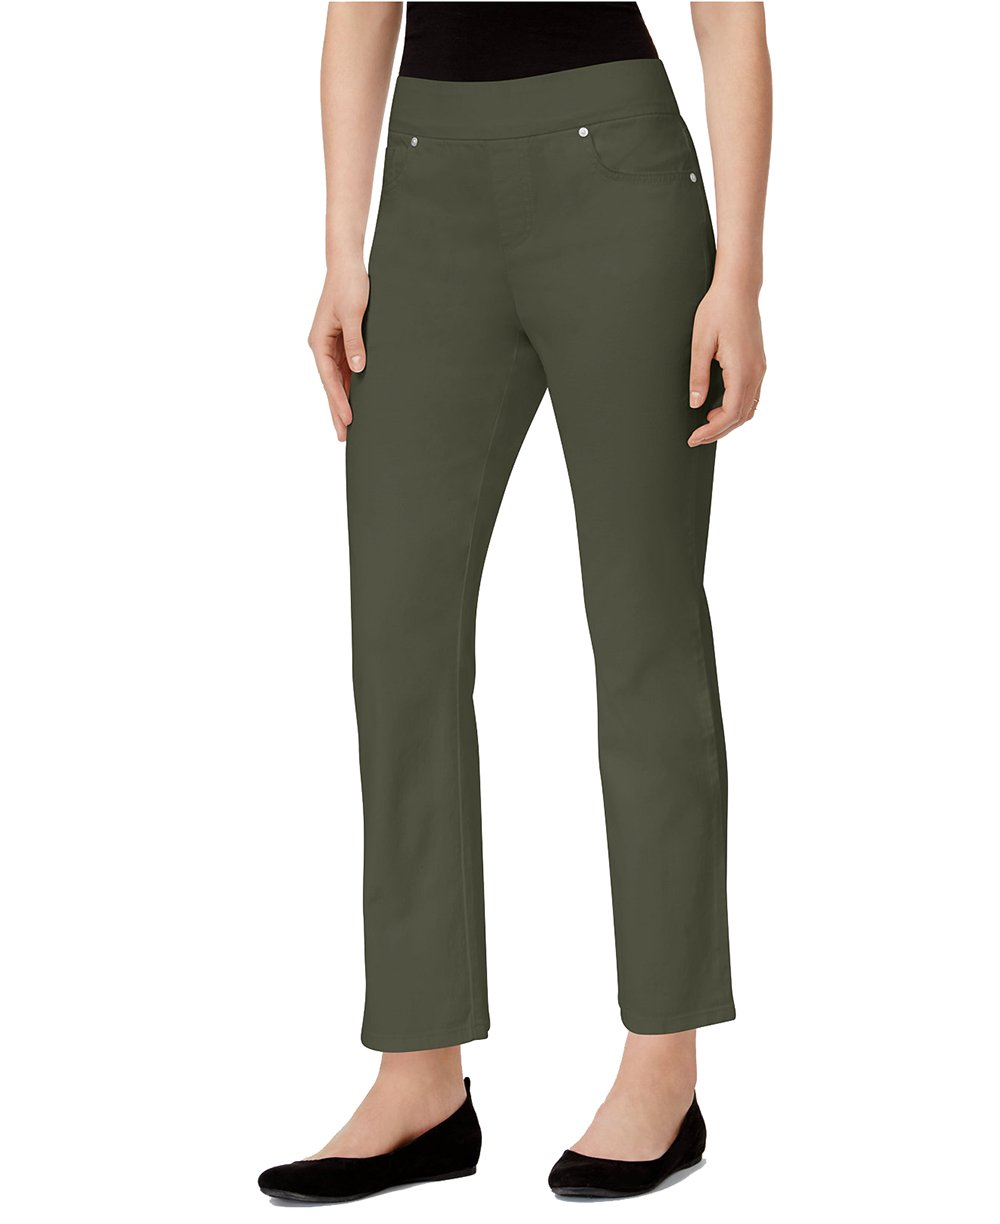 Style & Co. Women's Ankle Jeans (Olive, X-Large)